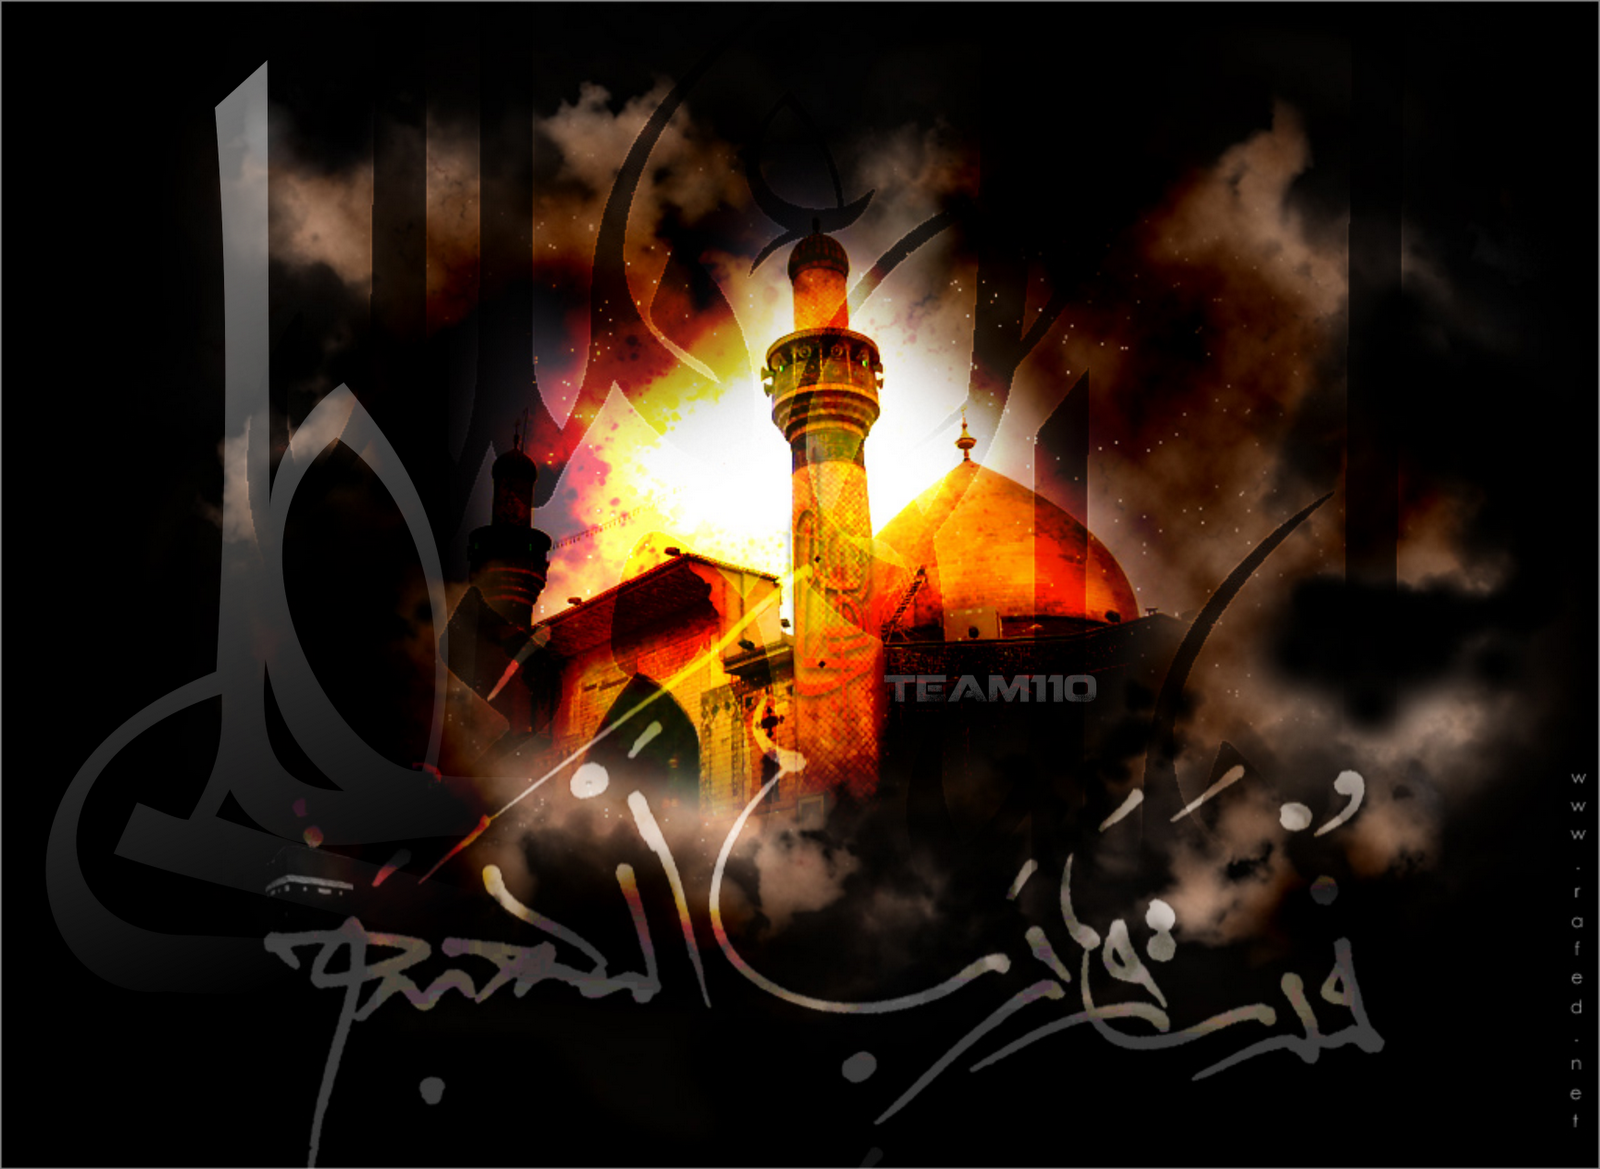 Ali As Wallpapers: TEAM 110 Wallpapers: 2 Hazrat Imam Ali (a.s.) Wallpapers